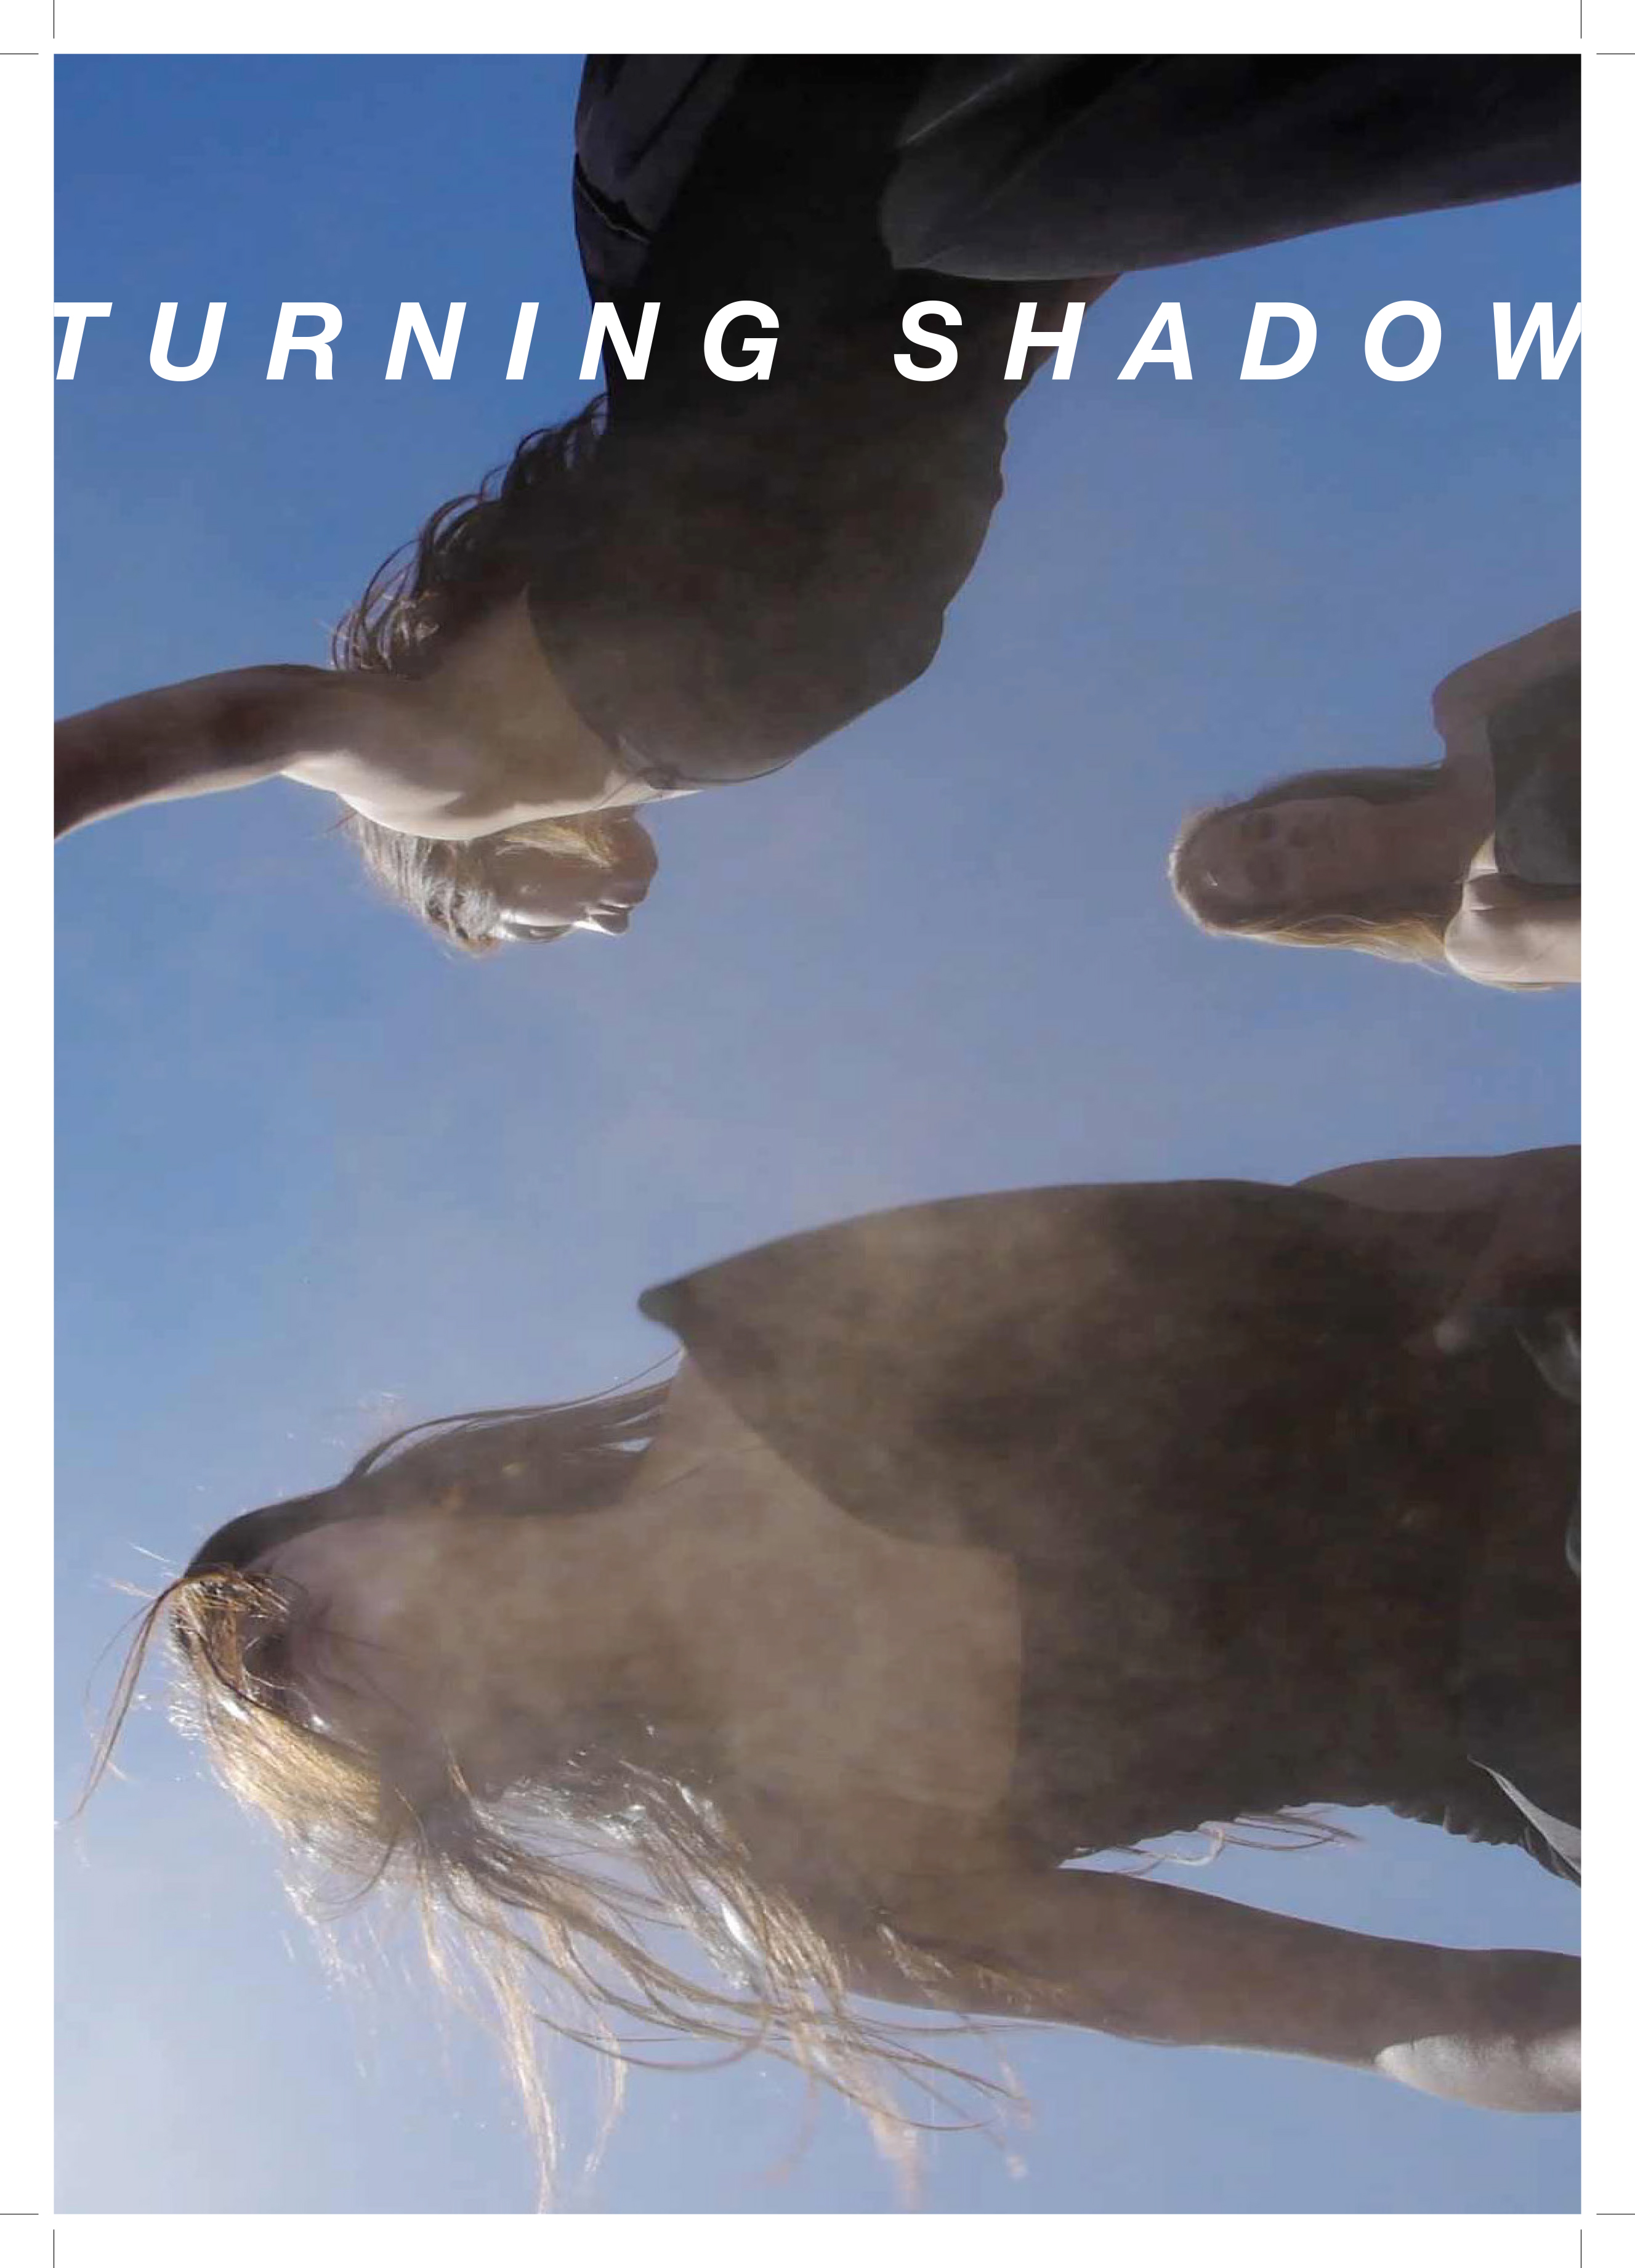 TURNING_SHADOW_POSTER